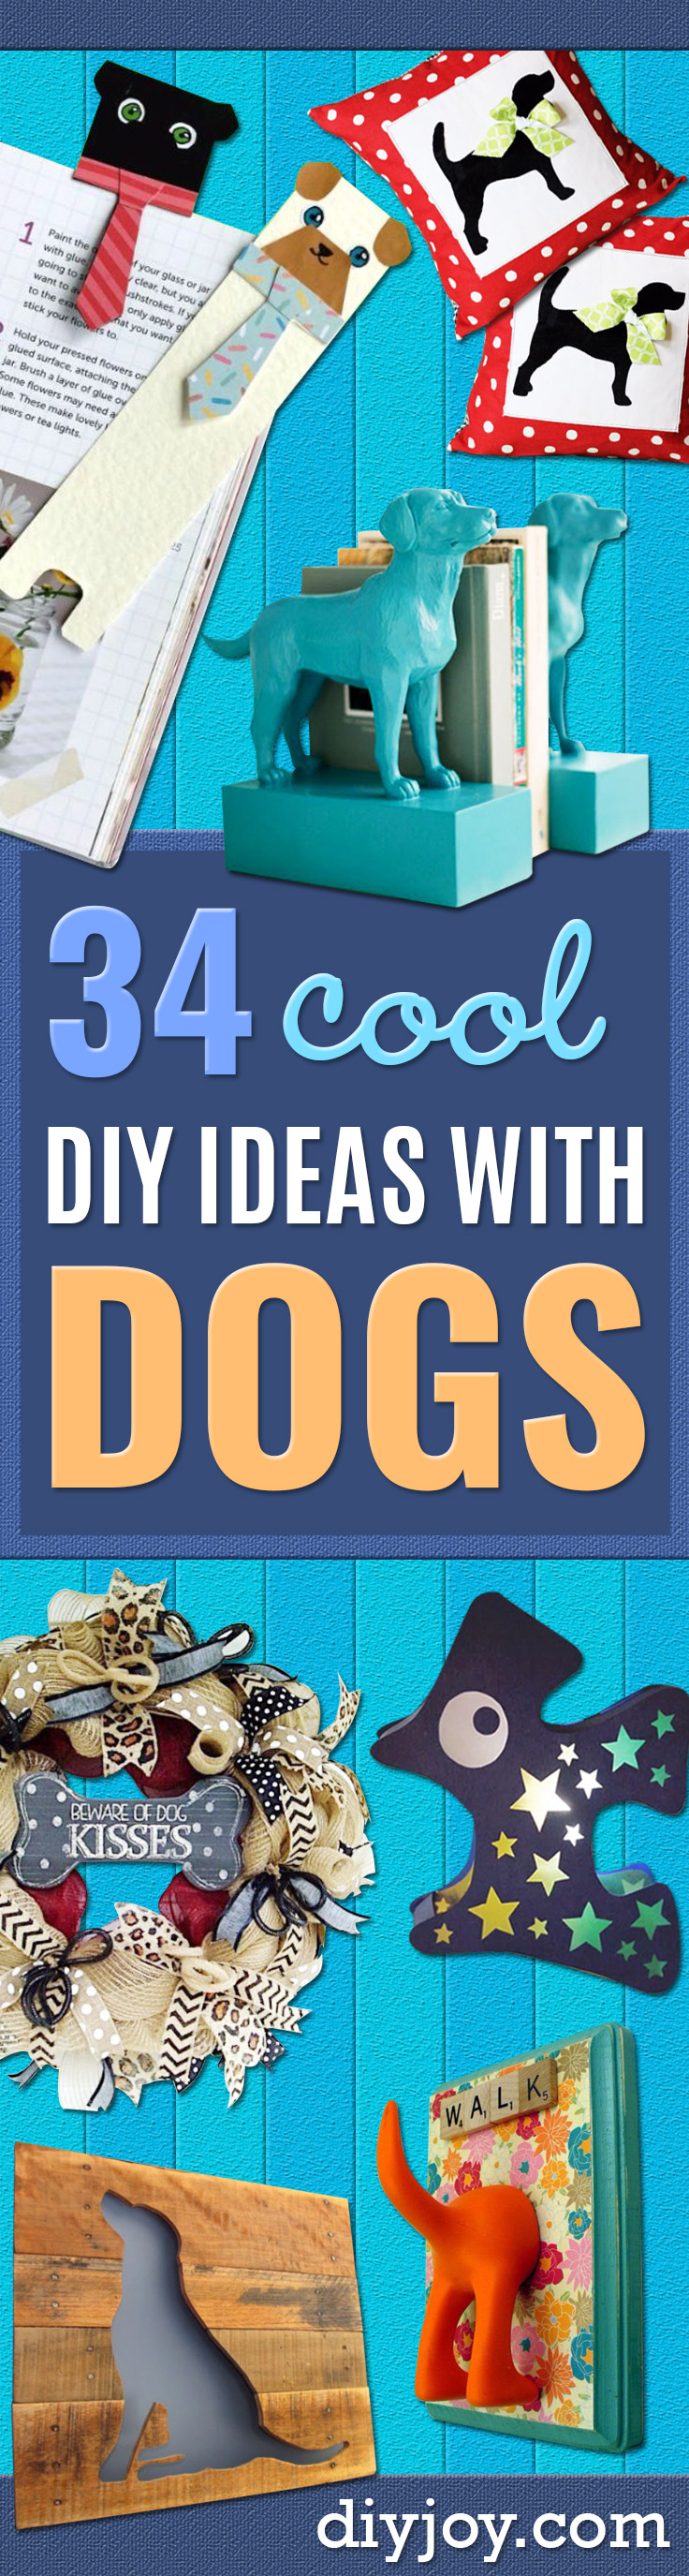 DIY Ideas With Dogs - Cute and Easy DIY Projects for Dog Lovers - Wall and Home Decor Projects, Things To Make and Sell on Etsy - Quick Gifts to Make for Friends Who Have Puppies and Doggies - Homemade No Sew Projects- Fun Jewelry, Cool Clothes and Accessories